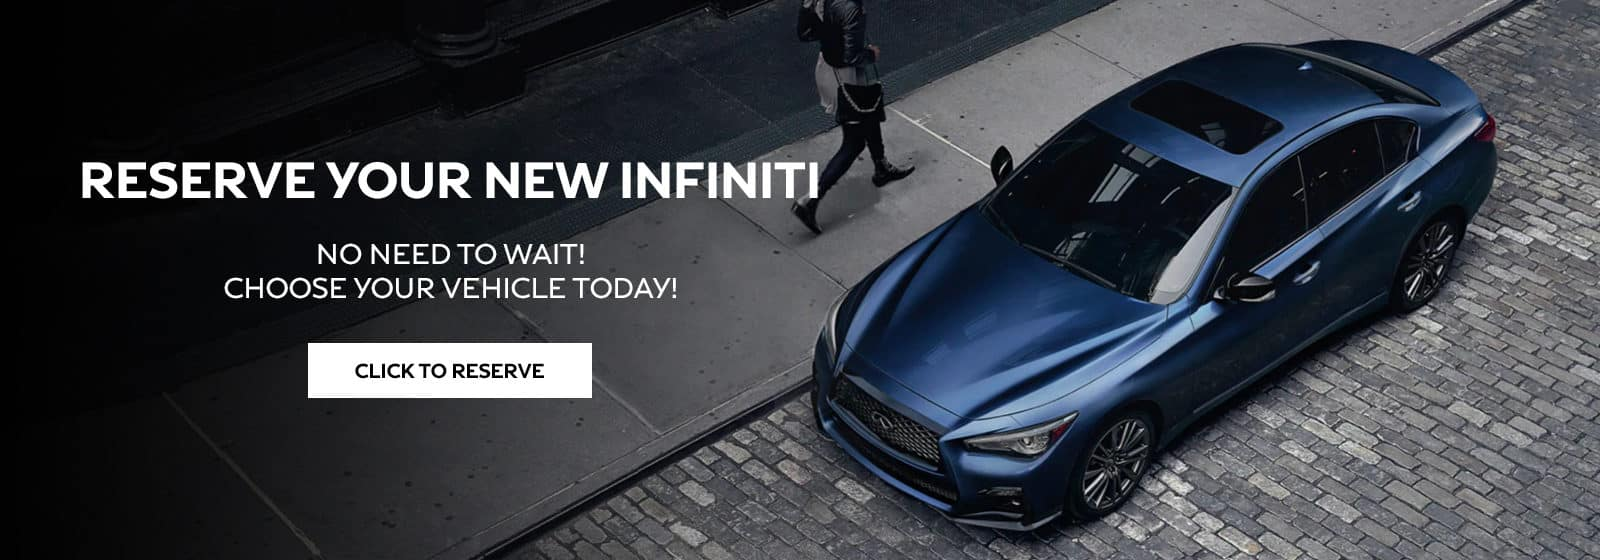 Reserve Your New INFINITI! Choose Your Vehicle Today!